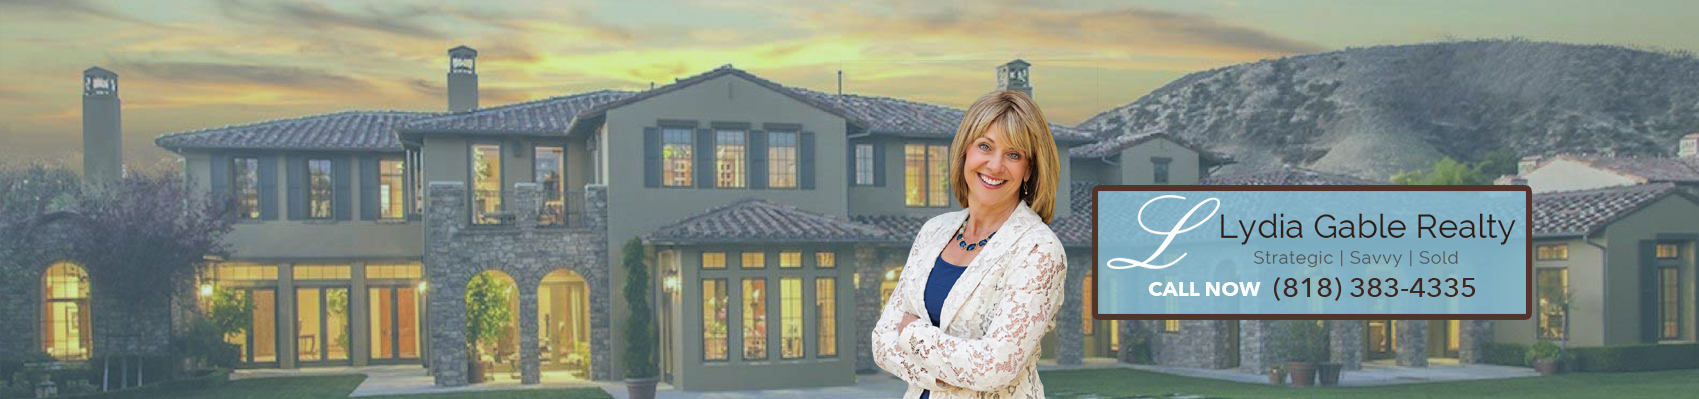 Lydia Gable Realty second image